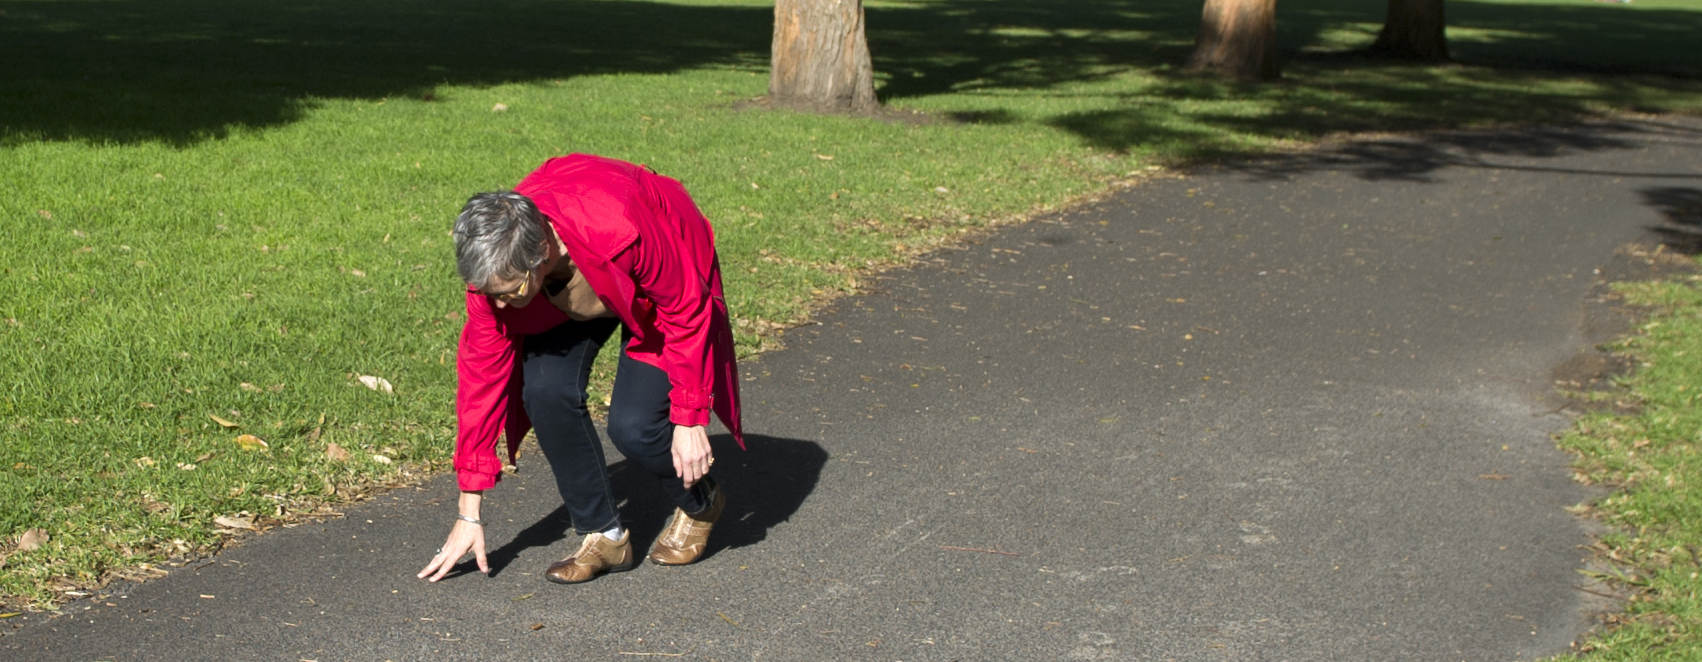 Older lady stumbles on park pathway